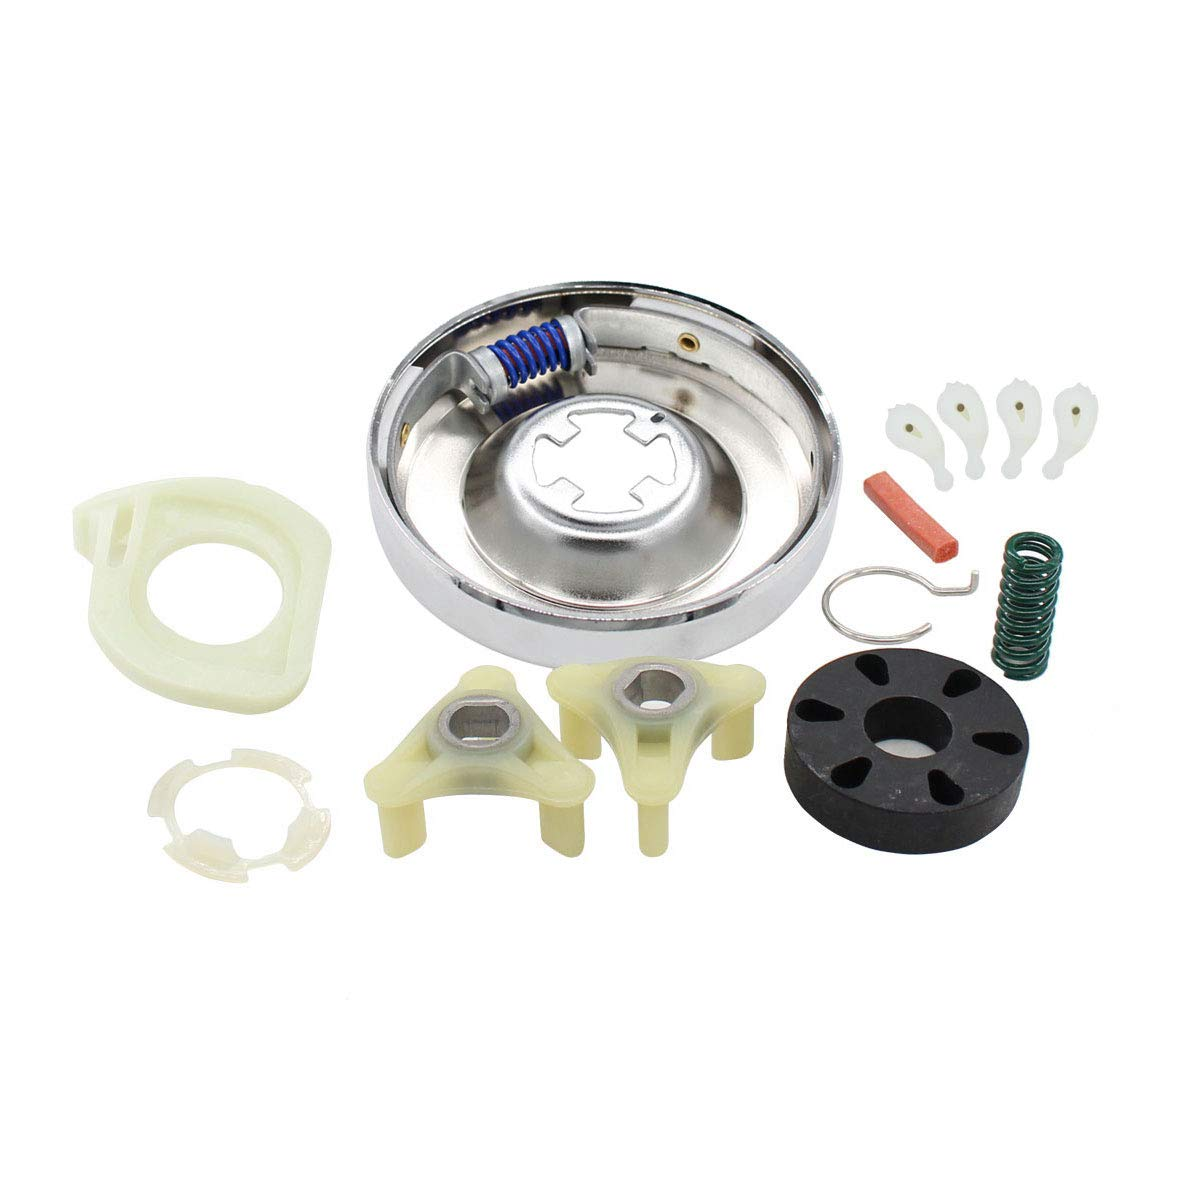 ApplianPar 285785 Washer Clutch & 285753A Motor Coupling Assembly Kit and 4Pcs 80040 Washer Agitator Dog for Whirlpool Kenmore Washing Machine 3351342 3946794 3951311 AP3094537 PS334641